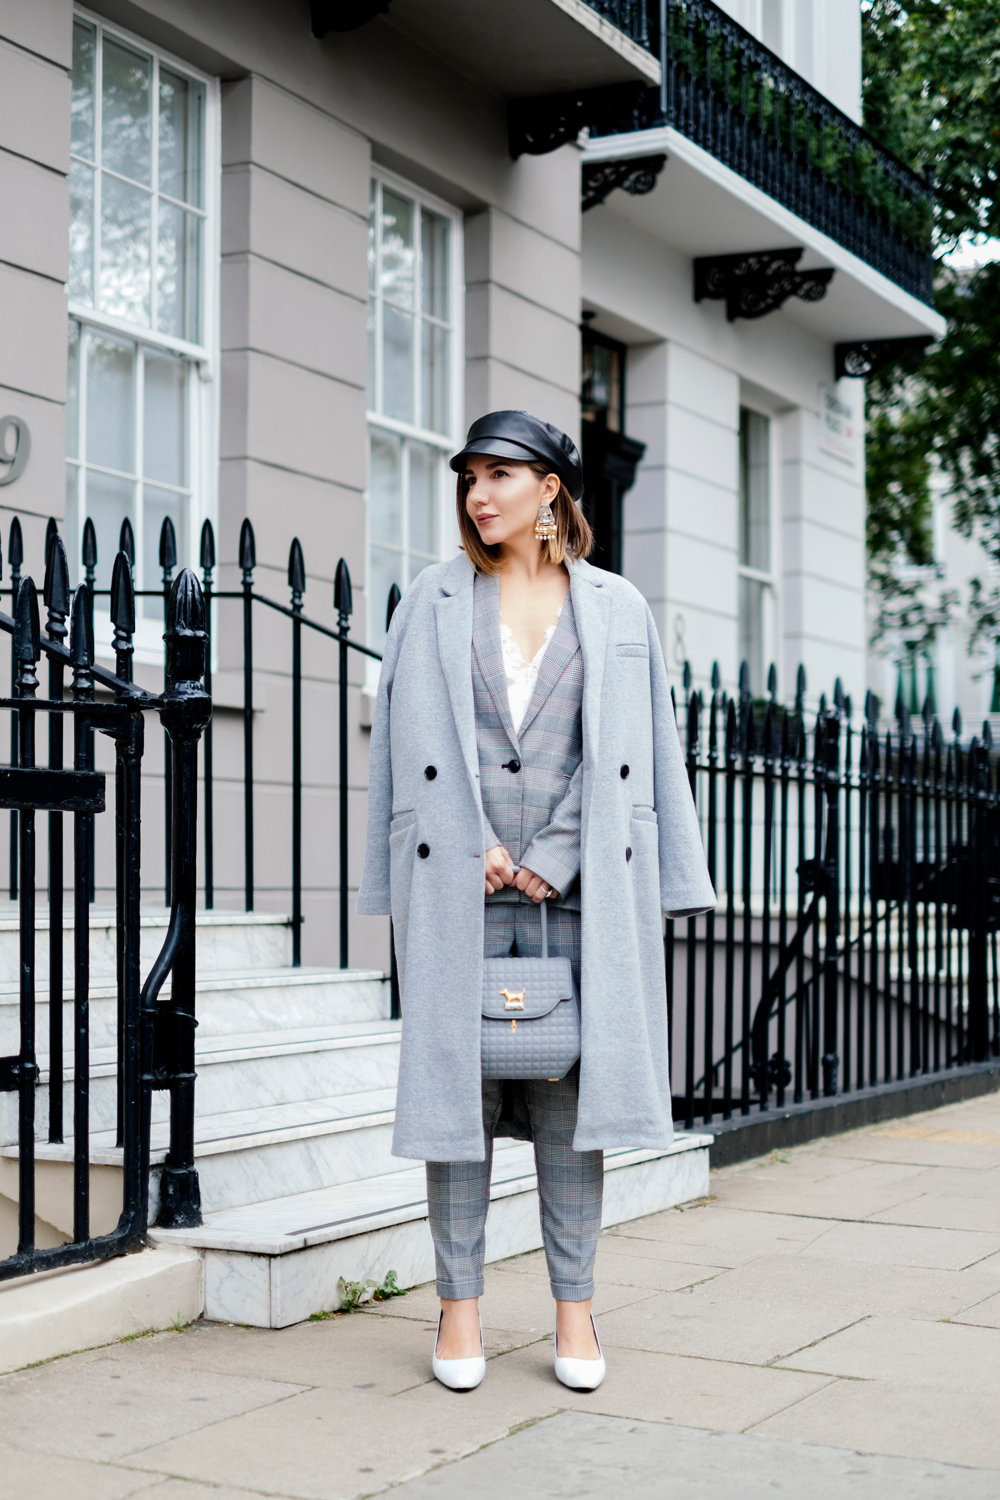 7 More Minutes. Fashion, travel and lifestyle blog by Alyona Gasimova. A Portrait In Grey. How To Wear All Grey Without Looking Boring. www.7moreminutes.com